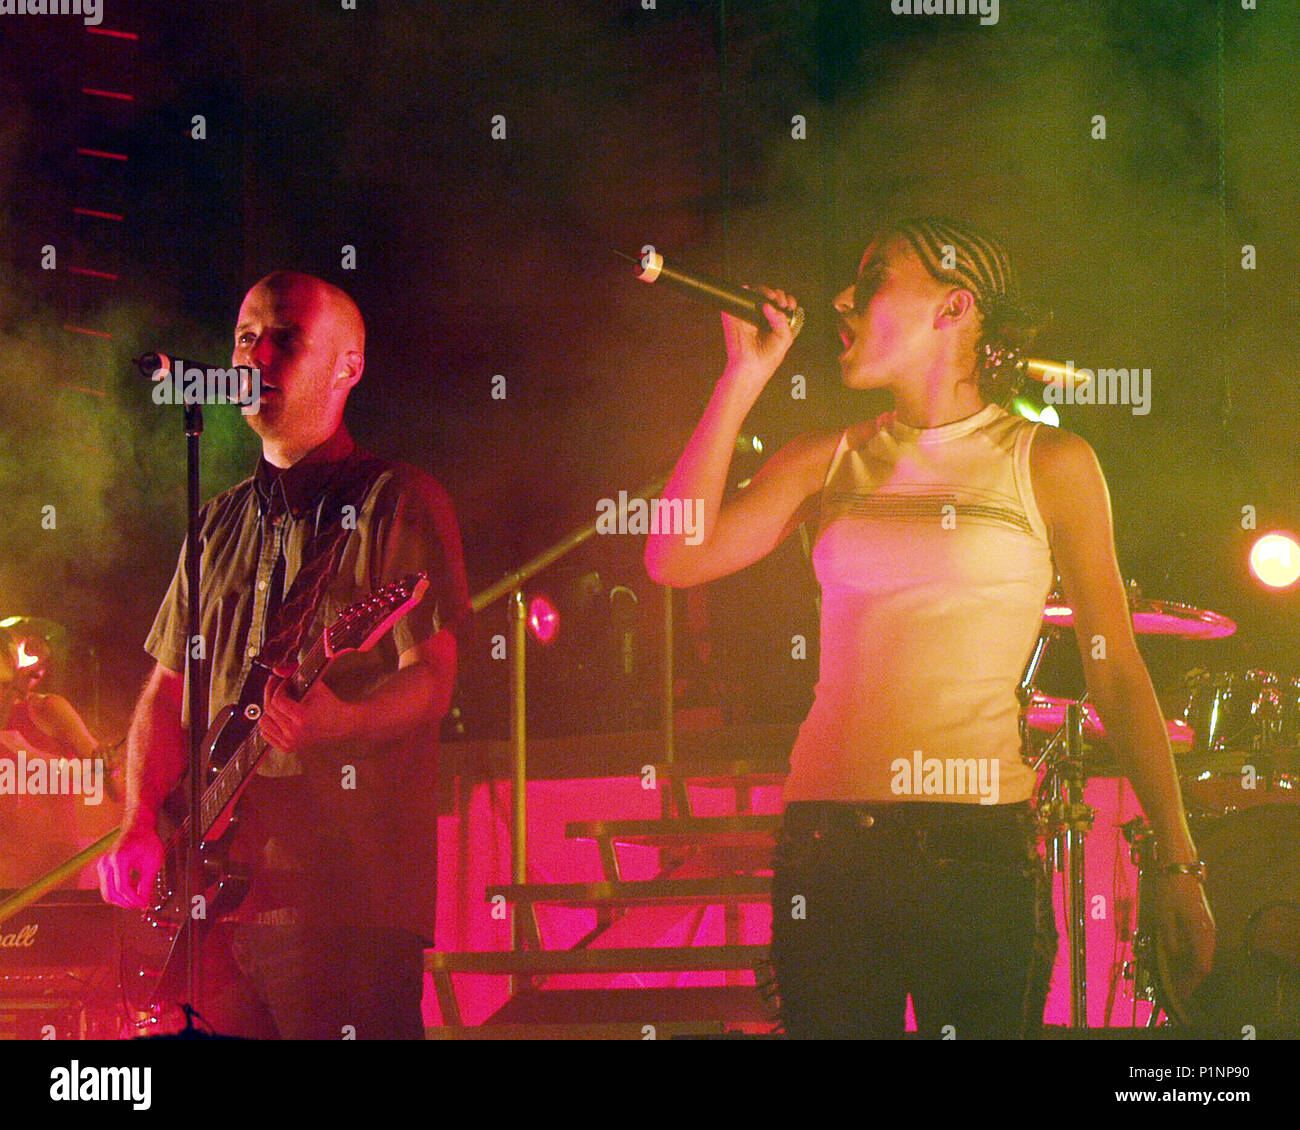 """ATLANTA, GA - July 10: Moby and Nelly Furtado rehearse the song """"South Side"""" the night before the opening date of the AREA : ONE Festival at Lakewood Amphitheatre in Atlanta, Georgia on July 10, 2001. CREDIT: Chris McKay / MediaPunch Stock Photo"""